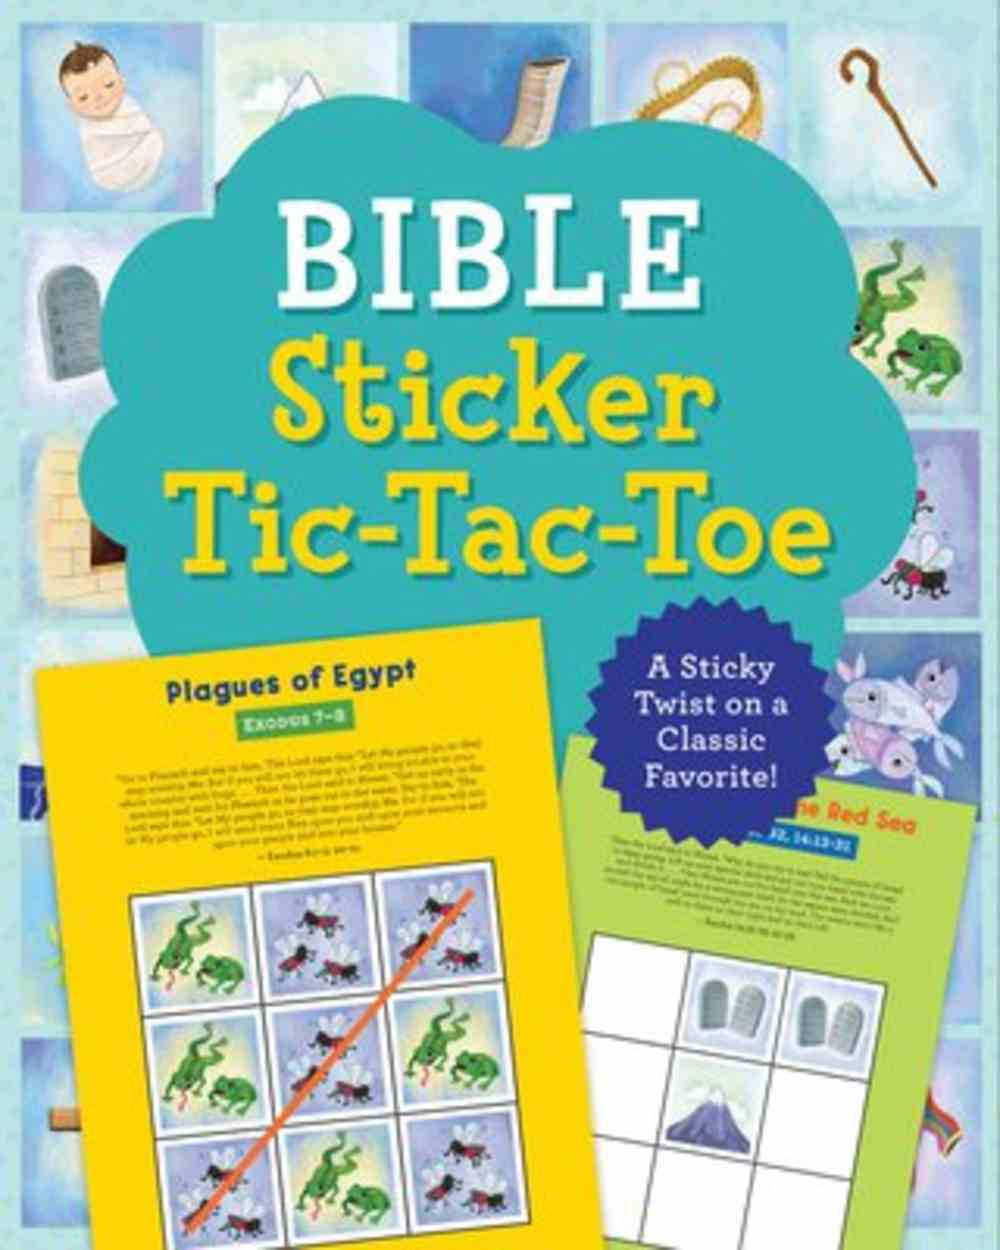 Bible Sticker Tic-Tac-Toe: A Sticky Twist on a Classic Favorite! Paperback